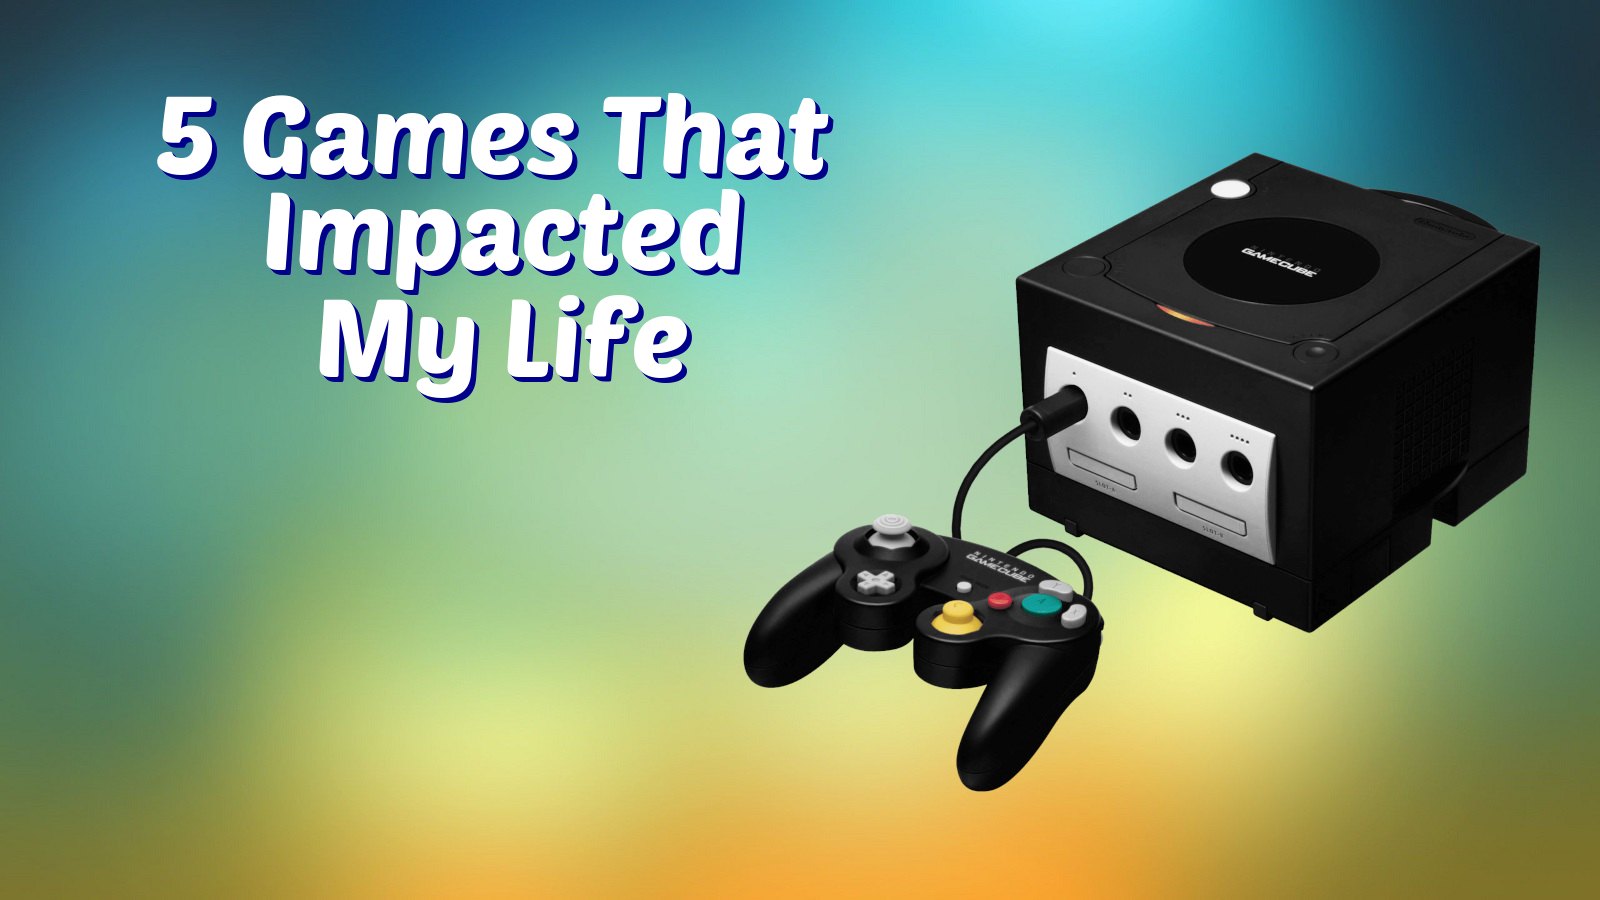 5 games that impacted my life cover